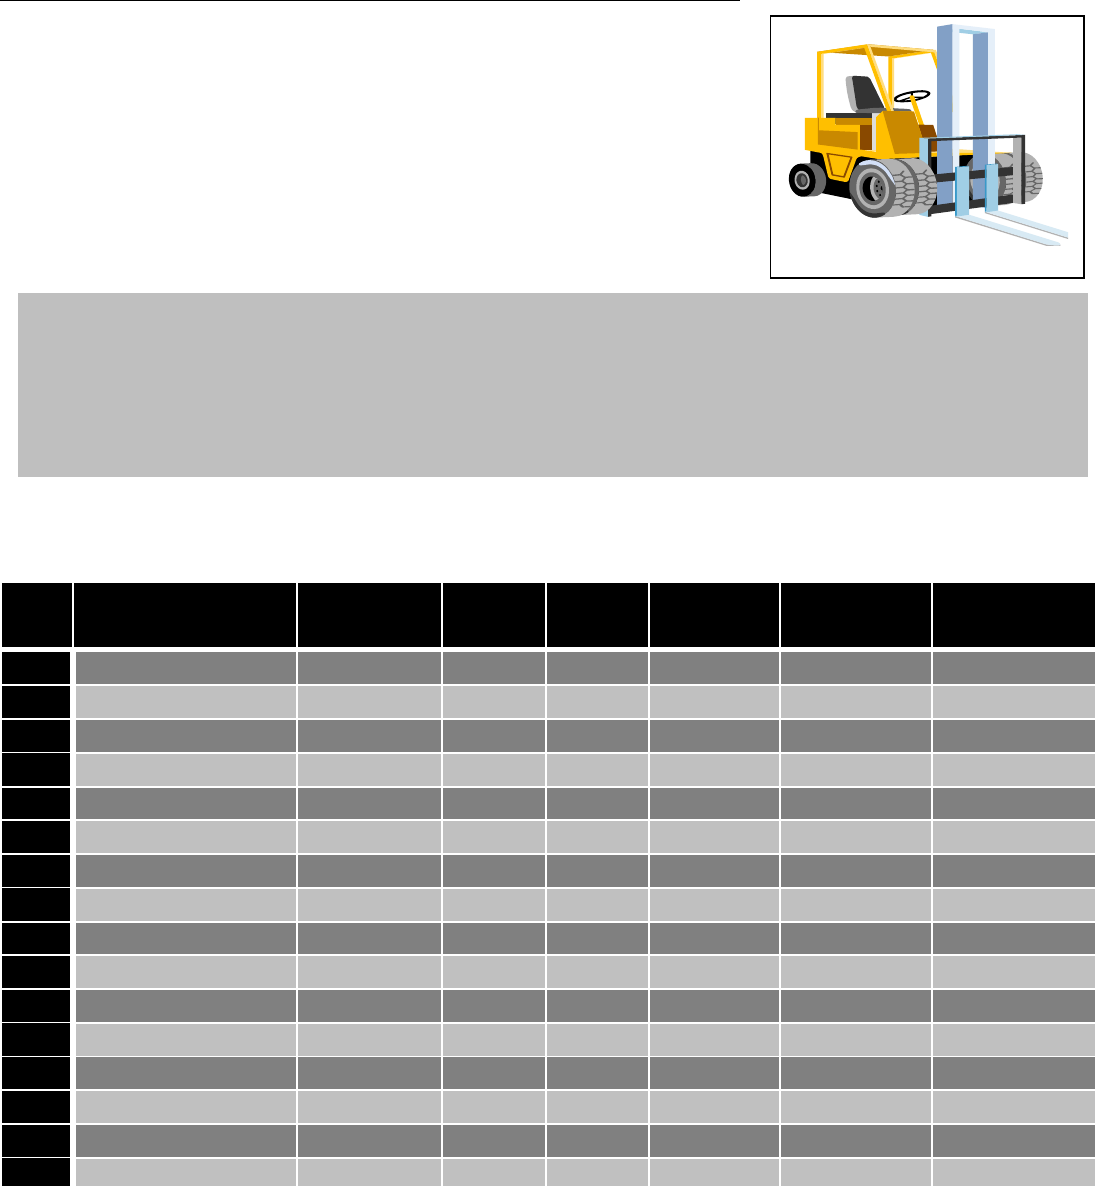 Download Editable Construction Activity Schedule Template Word Doc ...